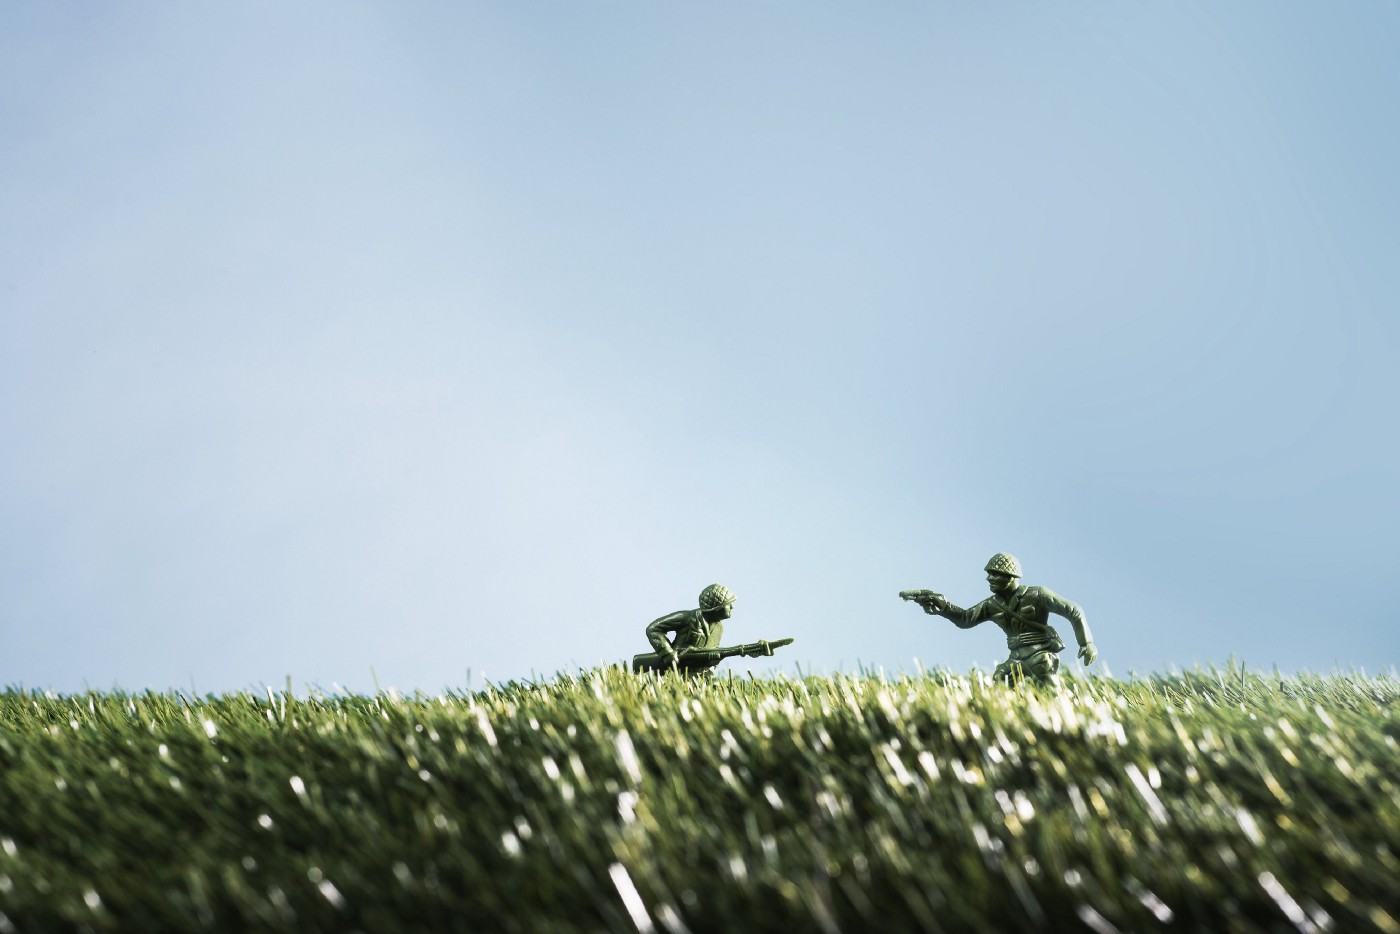 Toys soldiers in grass